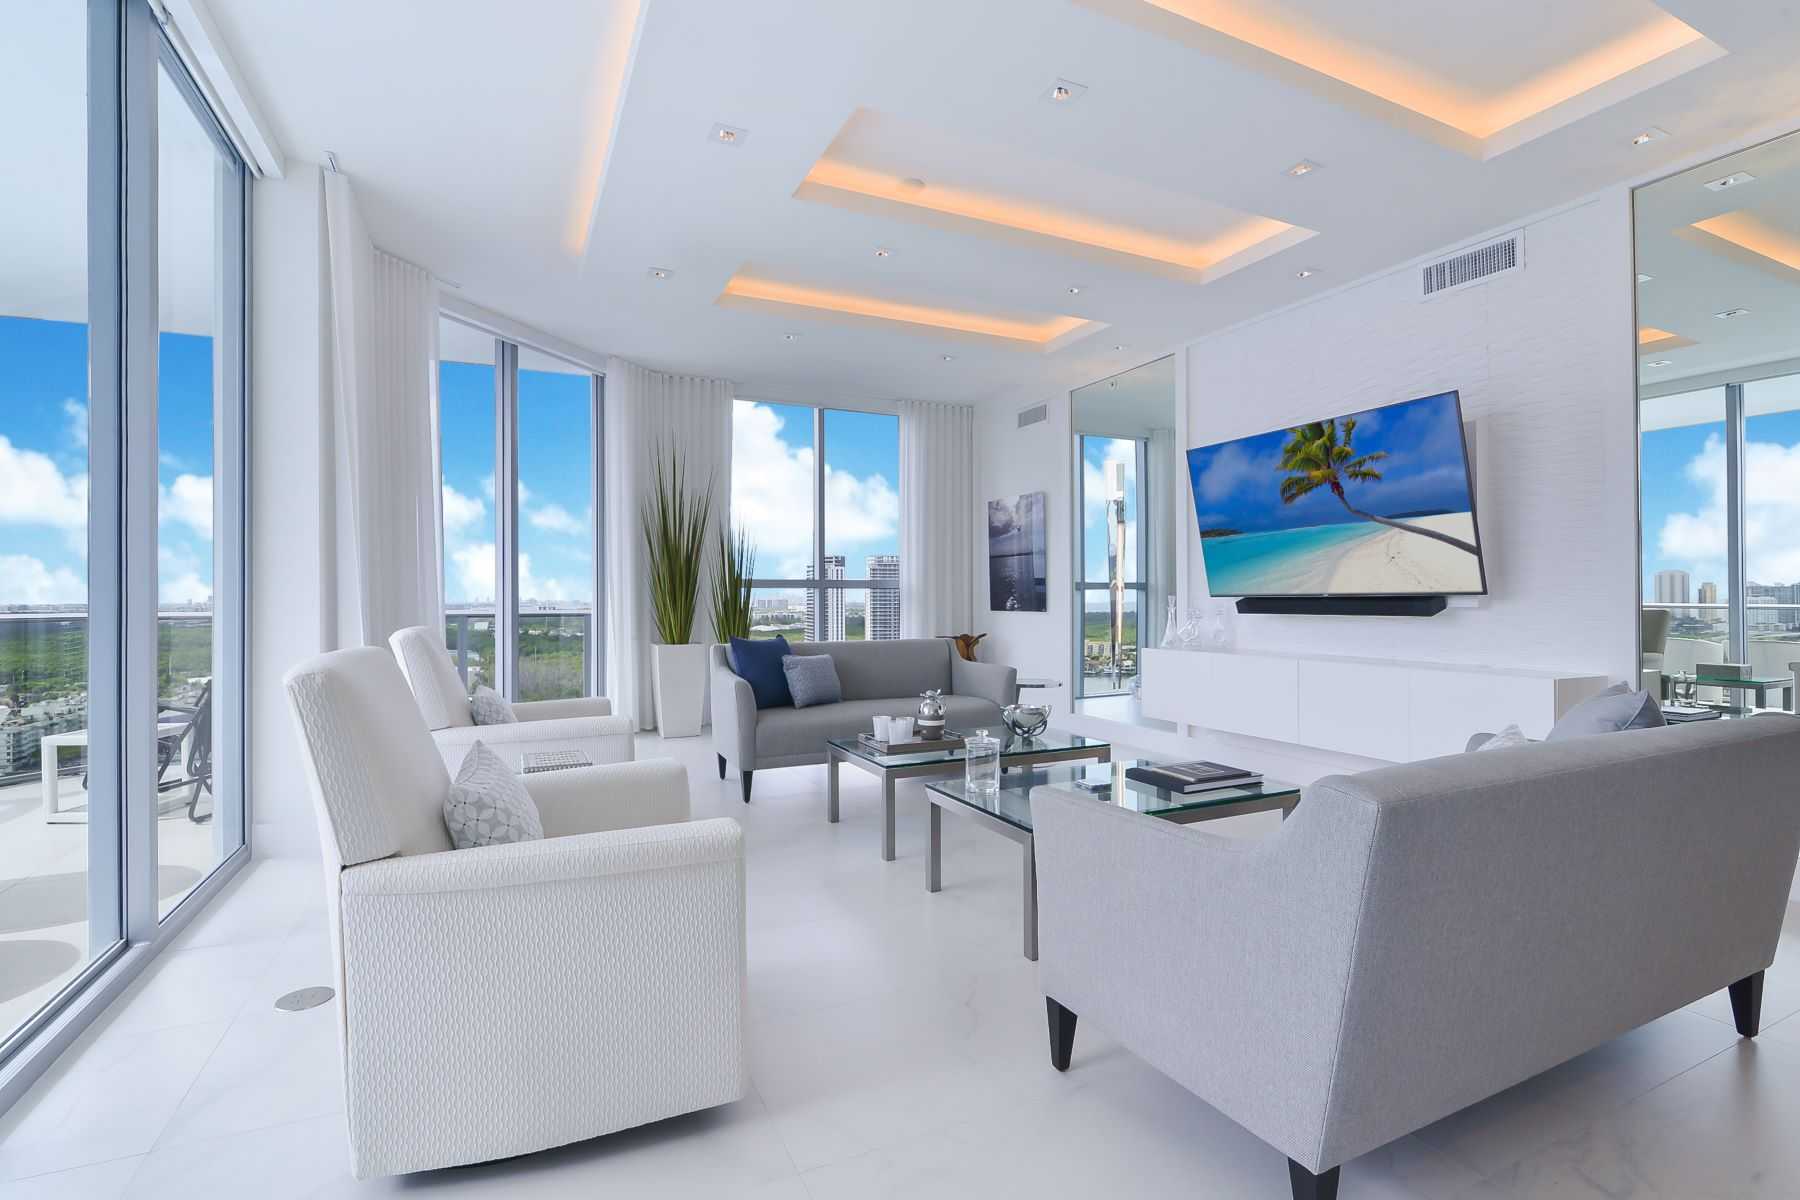 Condominiums for Sale at 17111 Biscayne Blvd LPH10 North Miami Beach, Florida 33160 United States